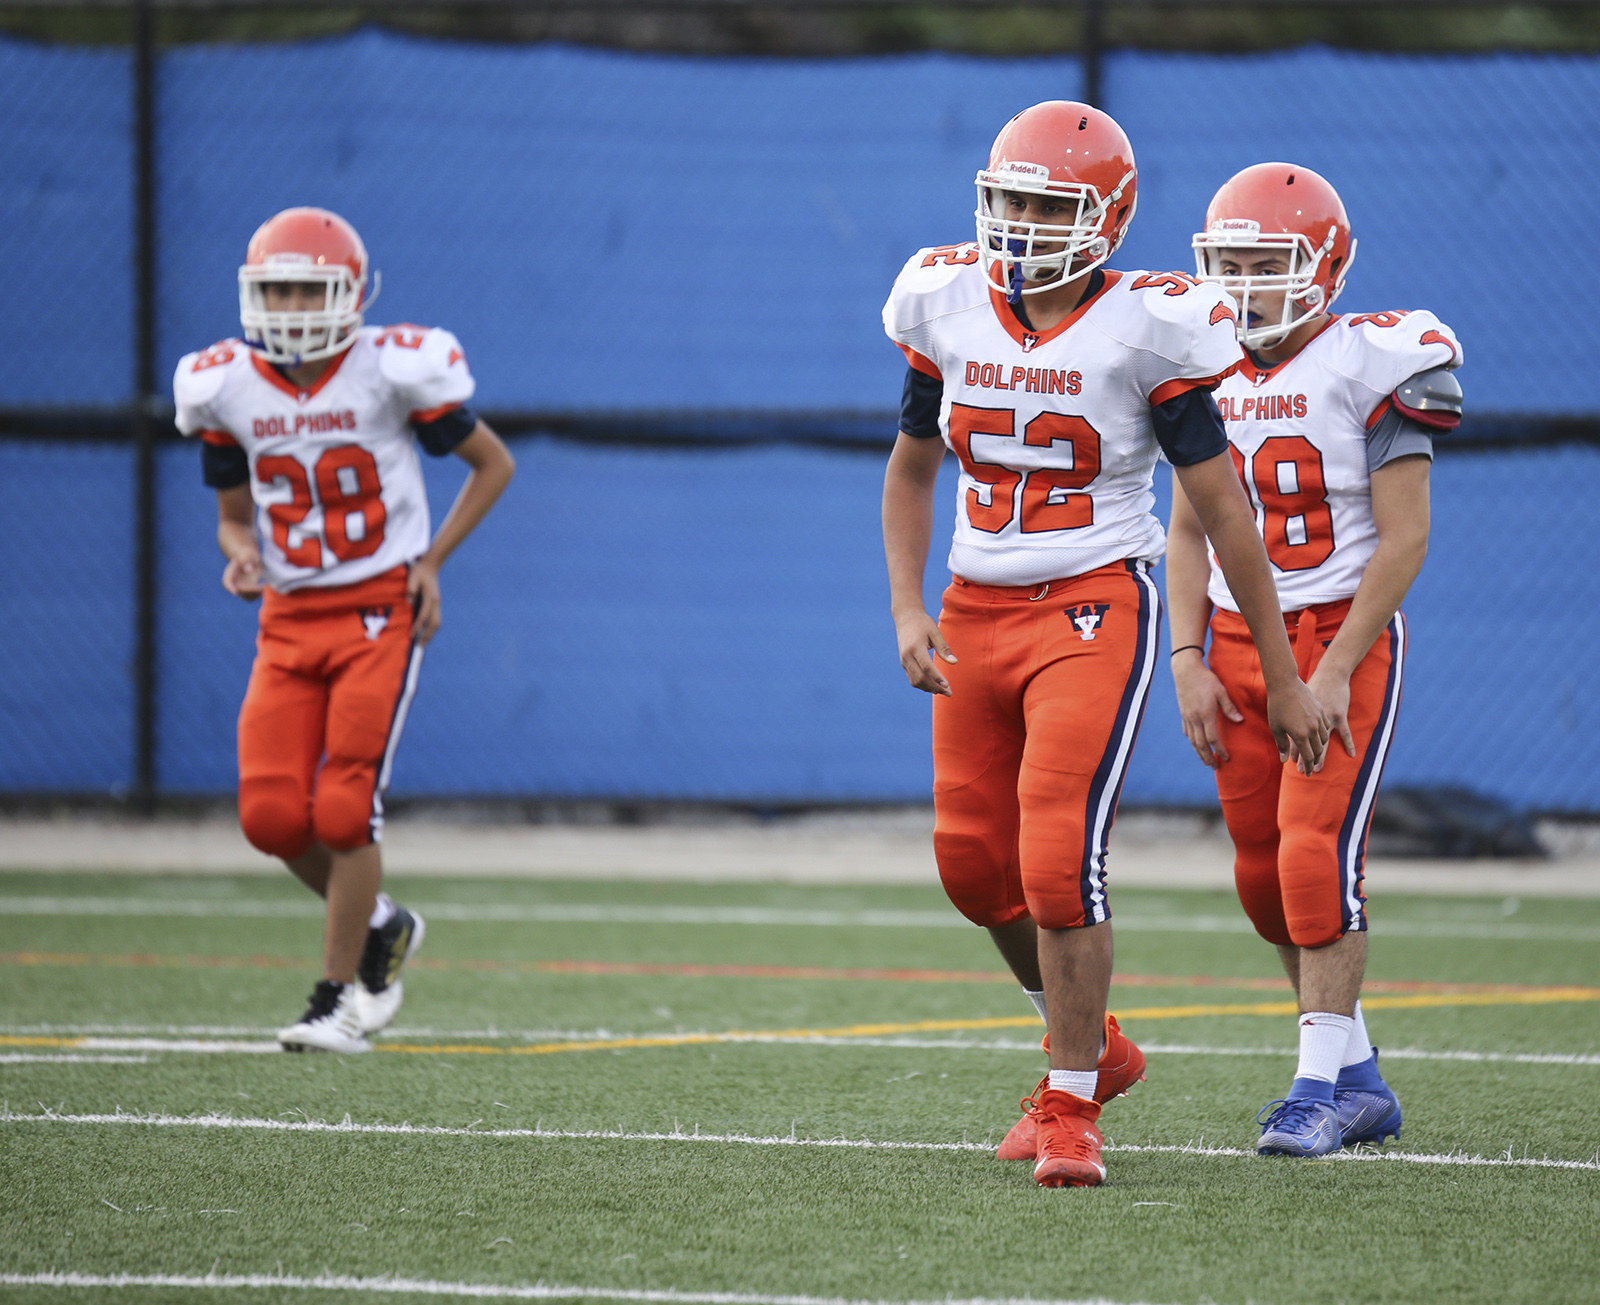 High school football players wear white-and-orange uniforms on the field